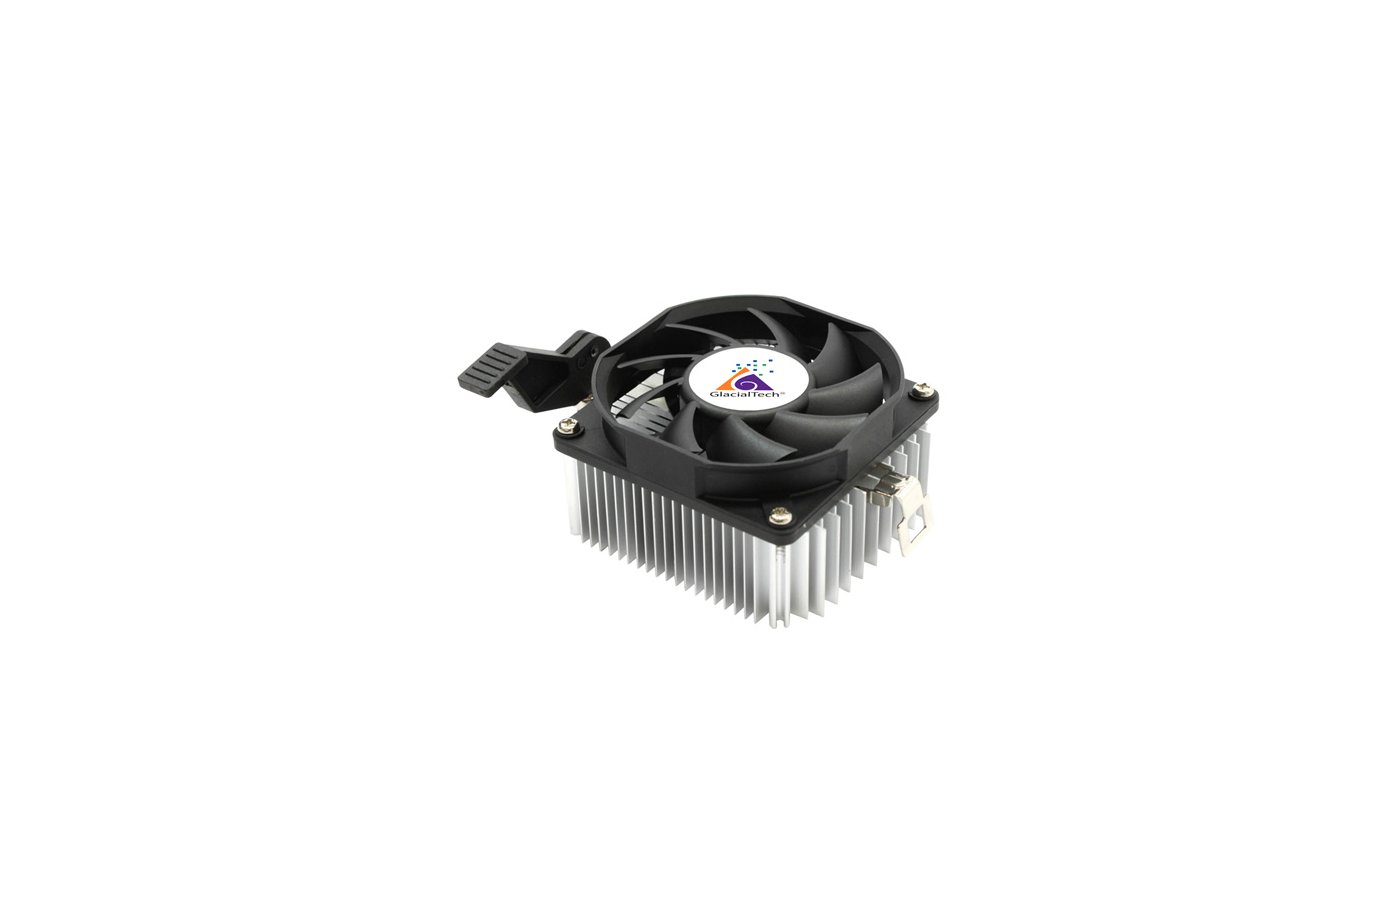 Охлаждение Glacialtech Igloo A200 Light Soc-AMD/ 3pin 21dB Al 65W 165g скоба BULK